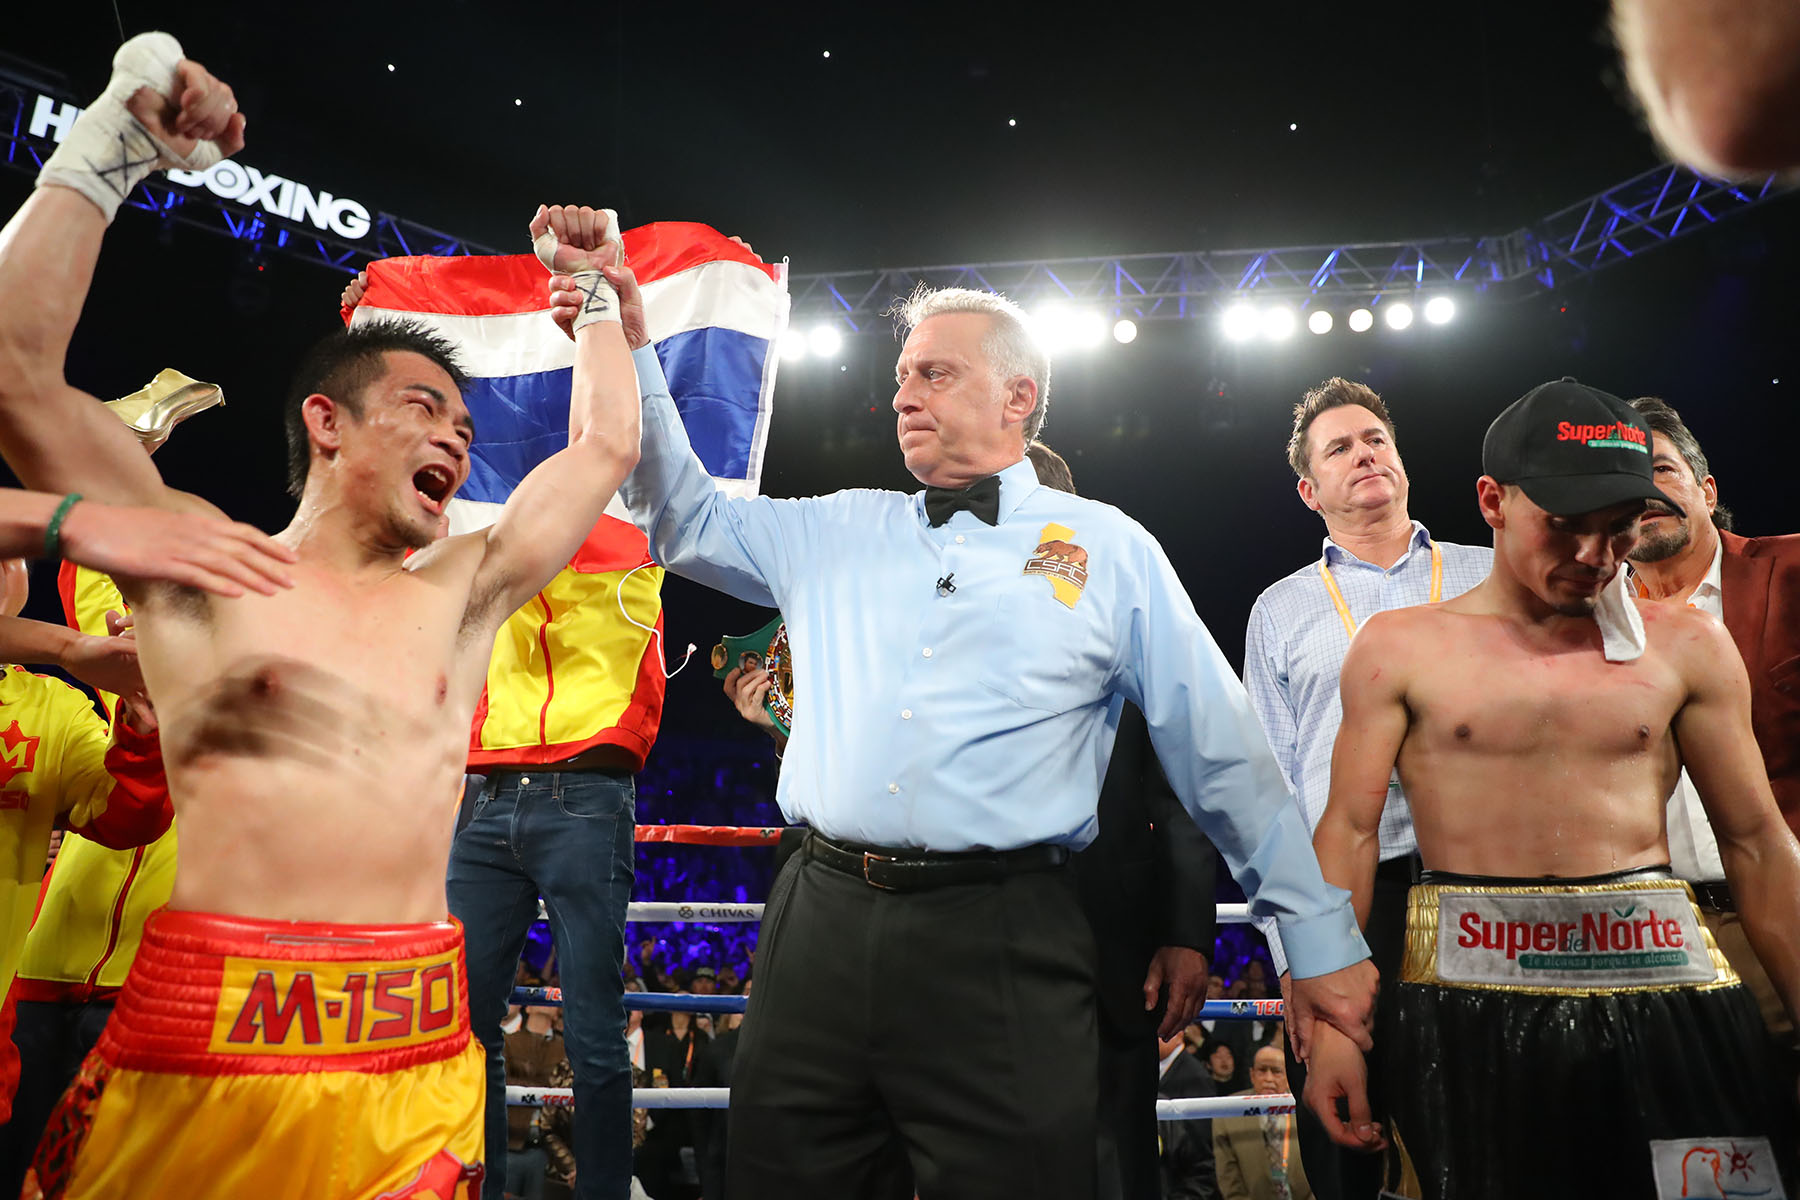 Unfortunately for both Rungvisai and Estrada they will likely be underrated and underappreciated due to the weight class they occupy.